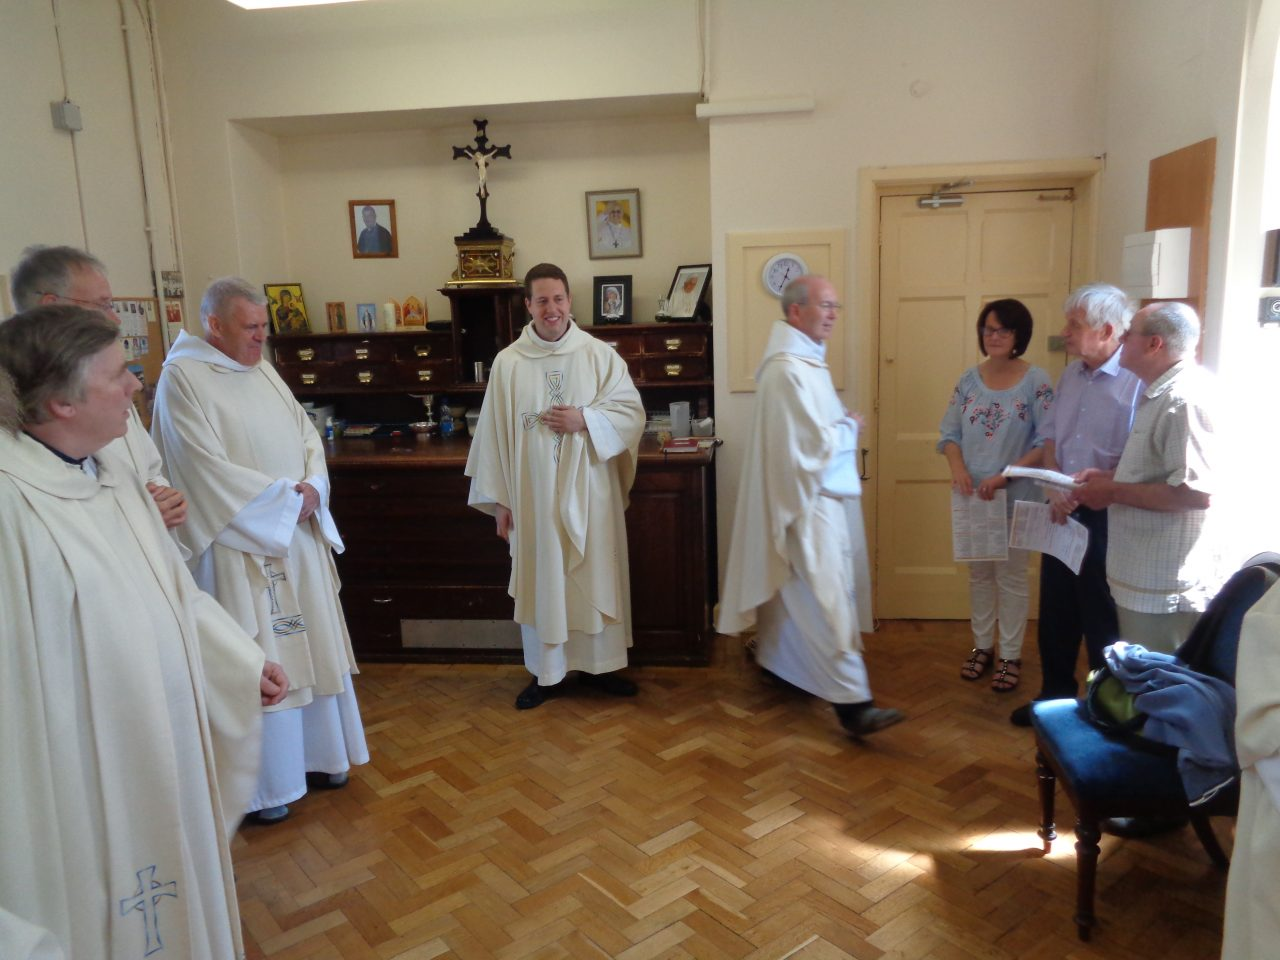 Priests and Parishioners in the Sacristy before Fr. Tom's First Mass